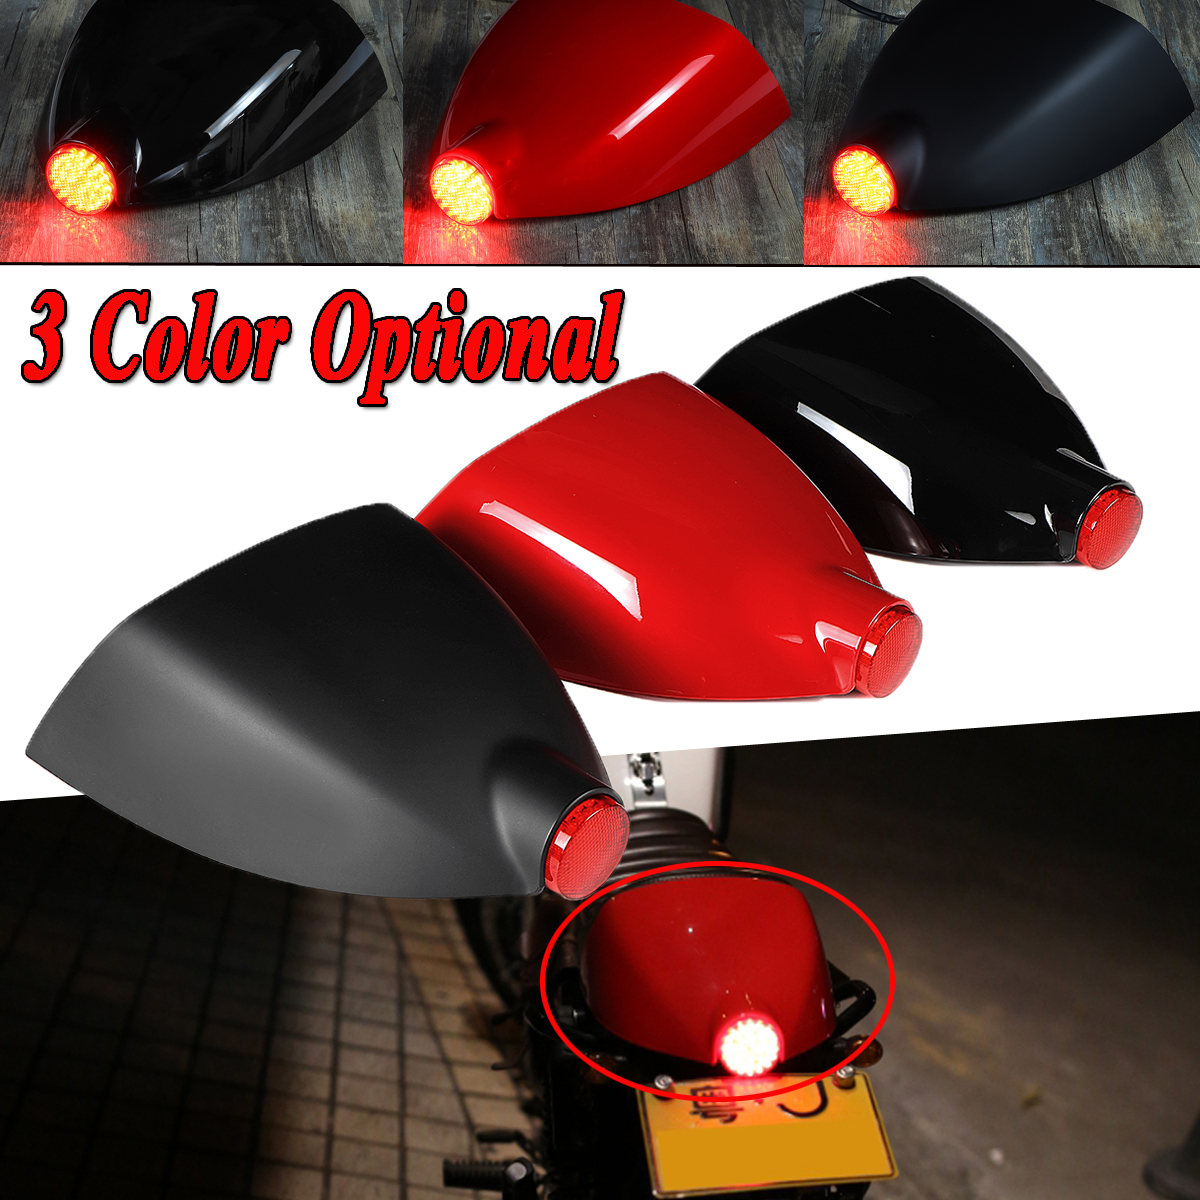 12V Motorcycle Cafe Racer Rear Seat Cowl Cover Fender Splash Guard Tail Light Universal